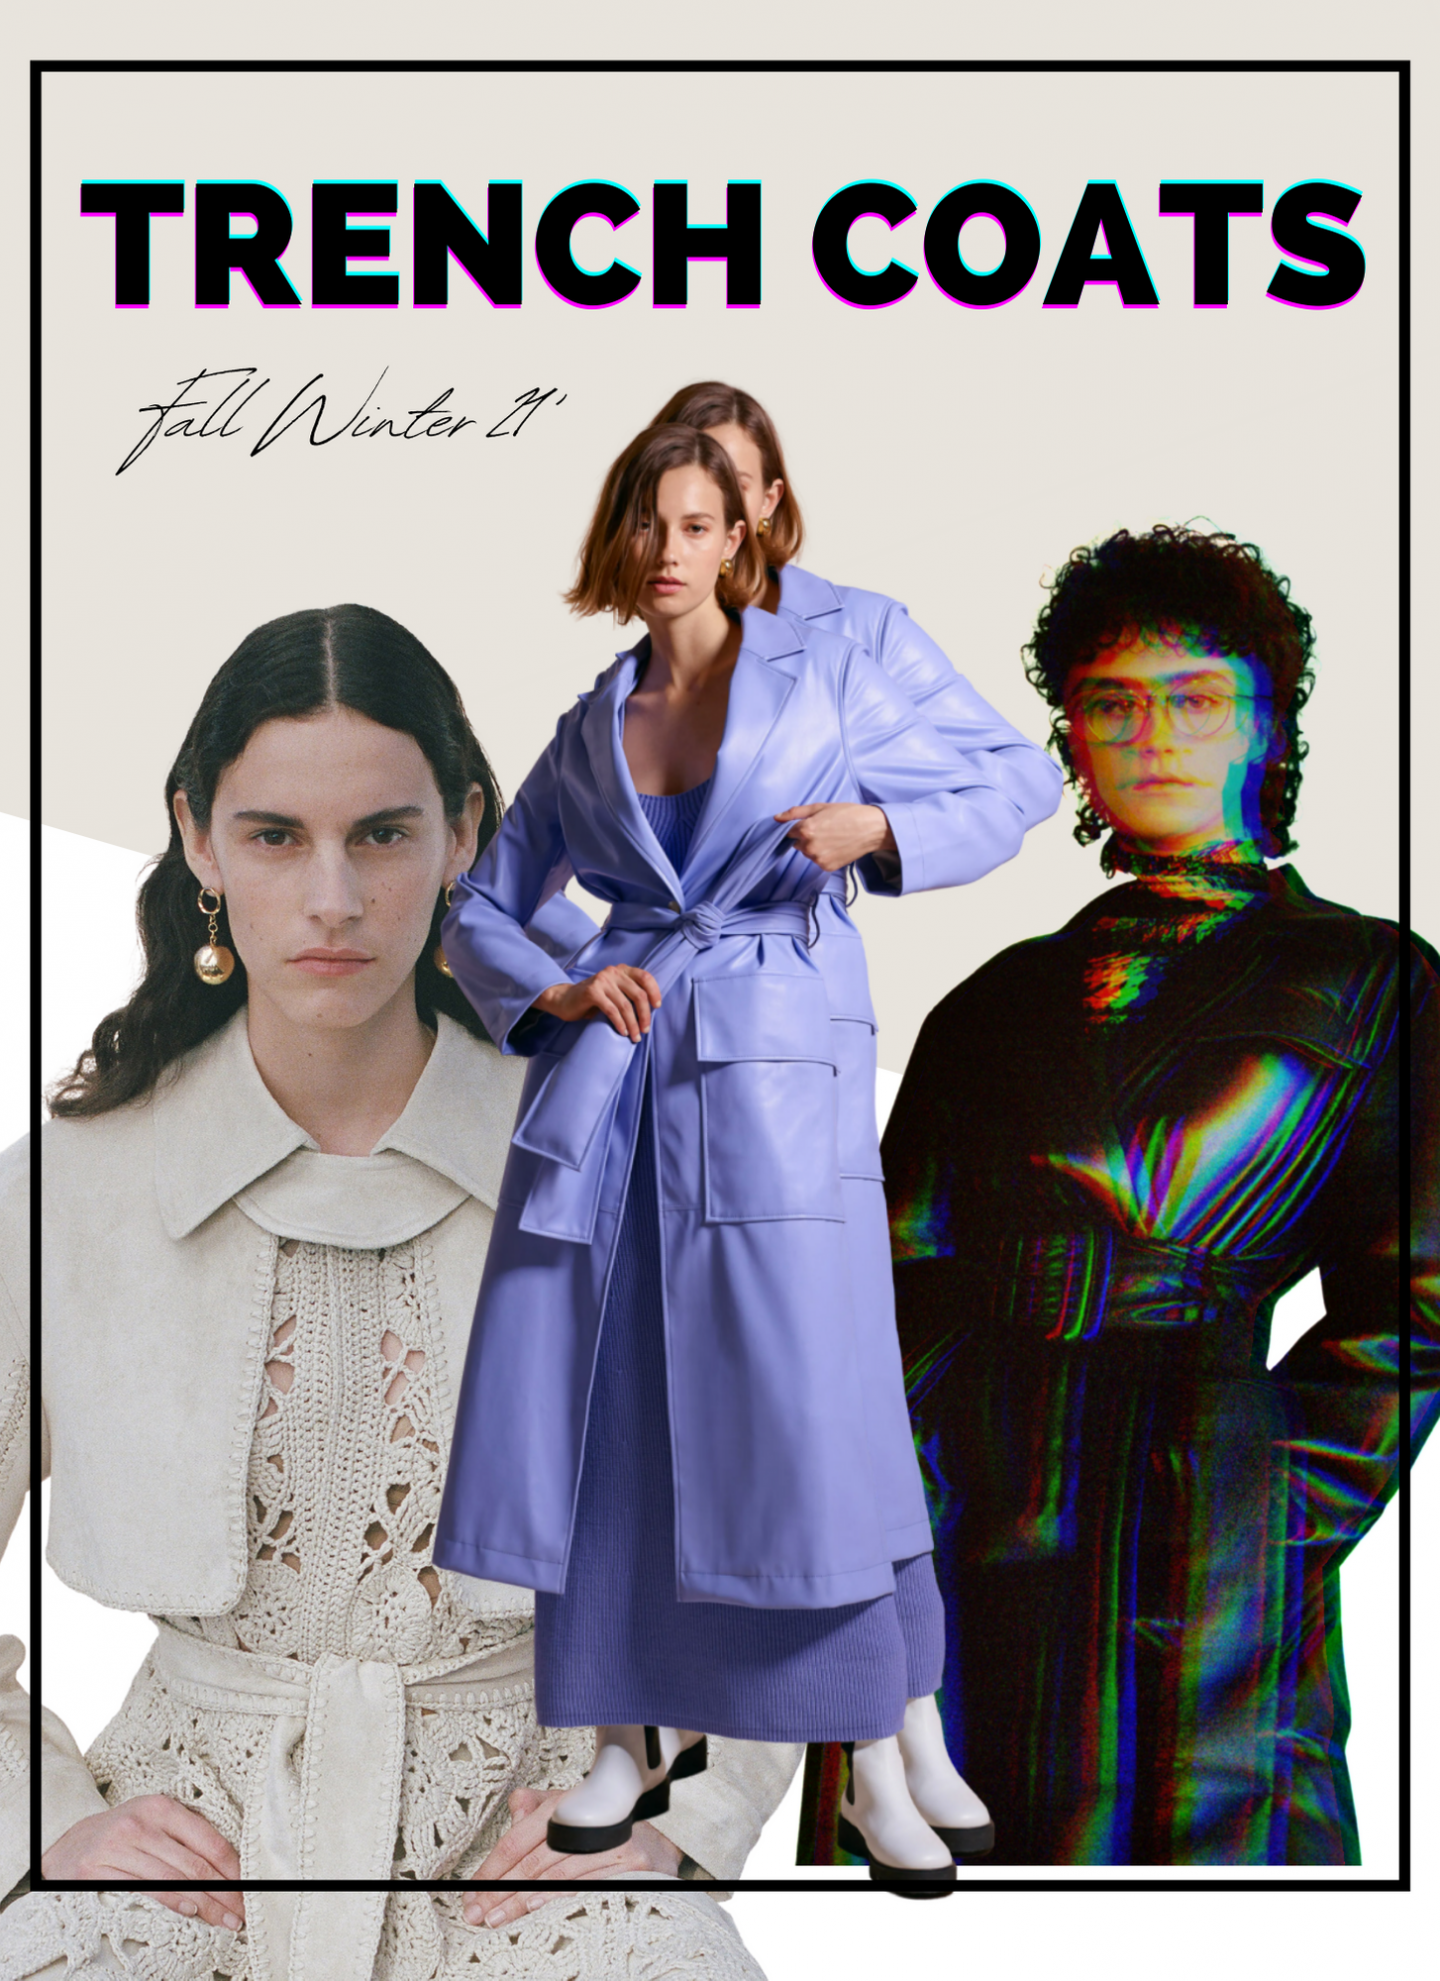 trench coat collage